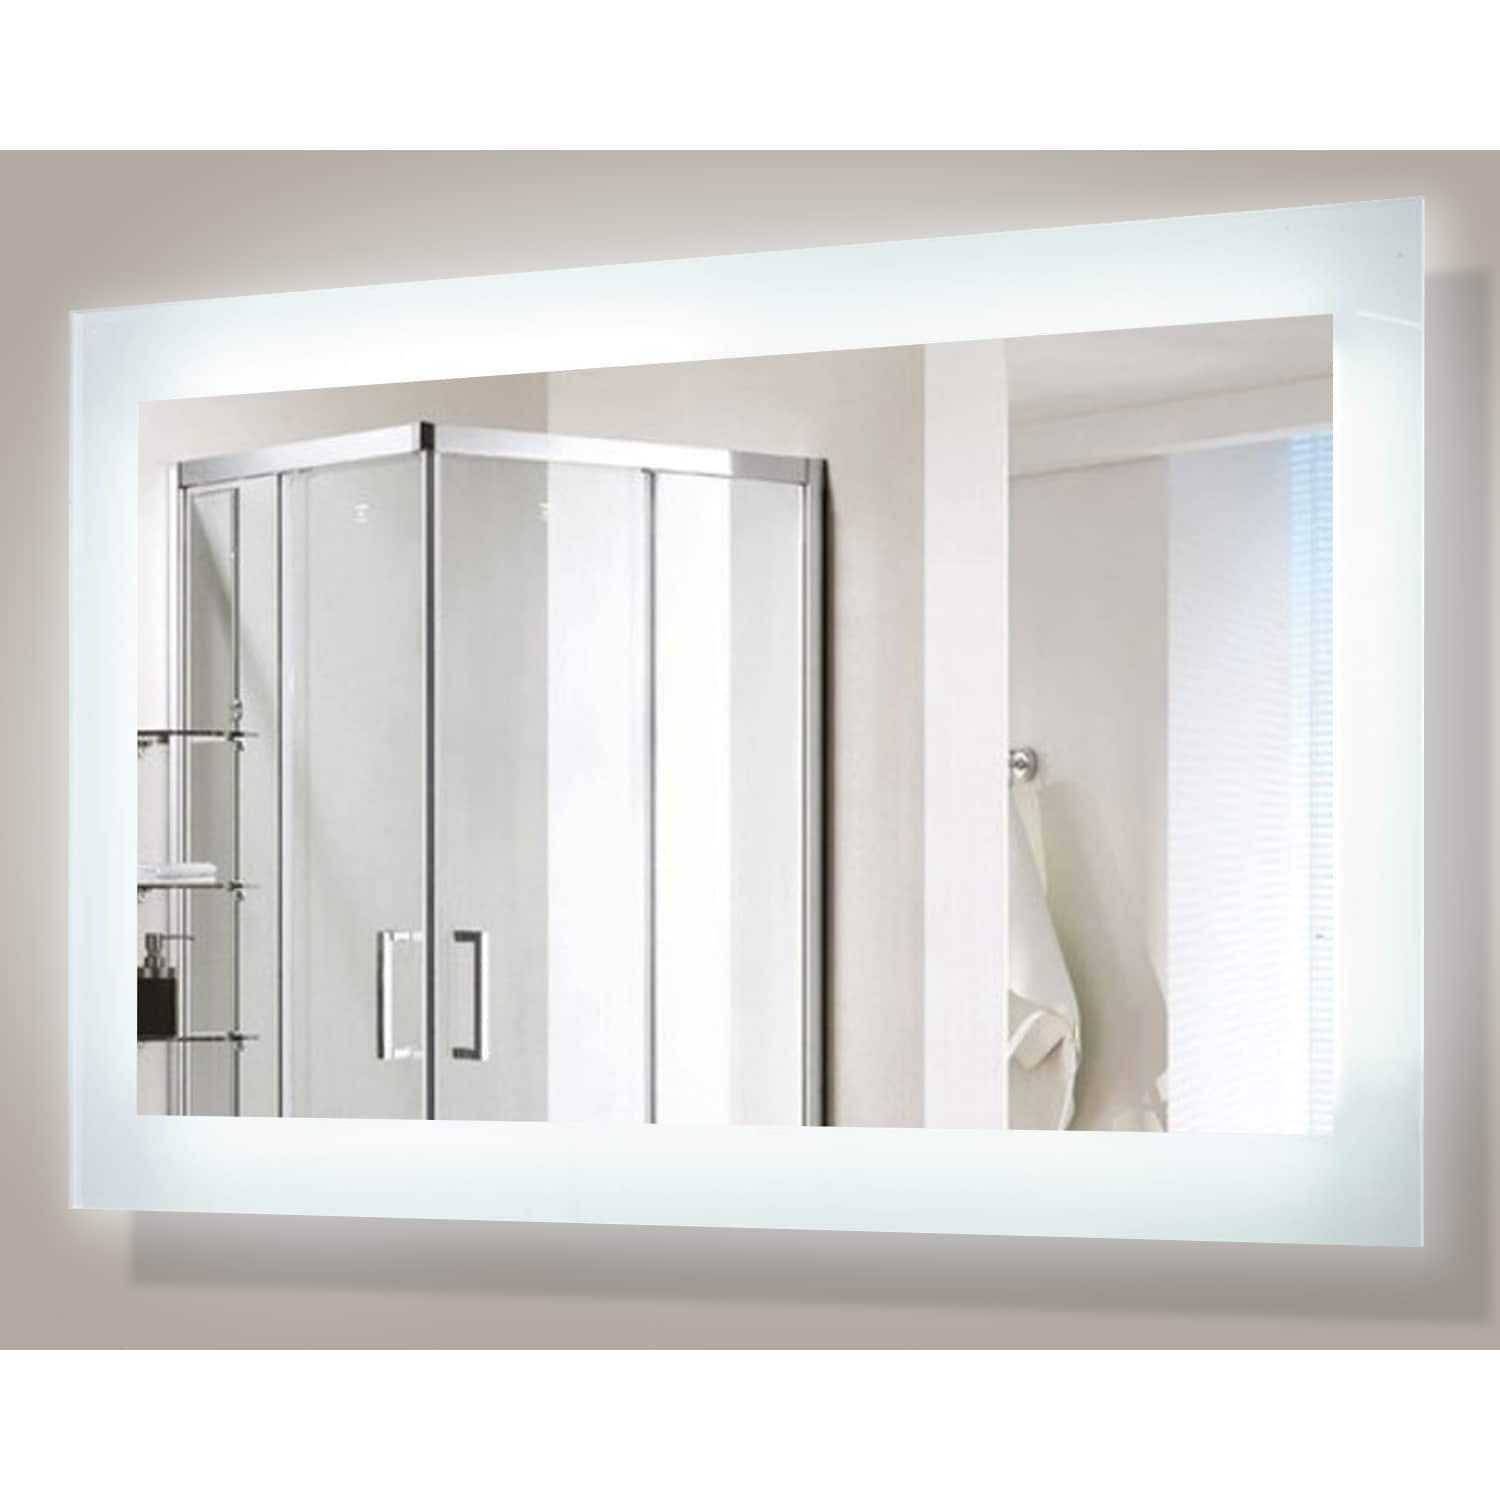 cheap 36 inch bathroom vanities find 36 inch bathroom vanities rh guide alibaba com 36 inch bathroom vanities clearance 36 inch bathroom vanities under $500